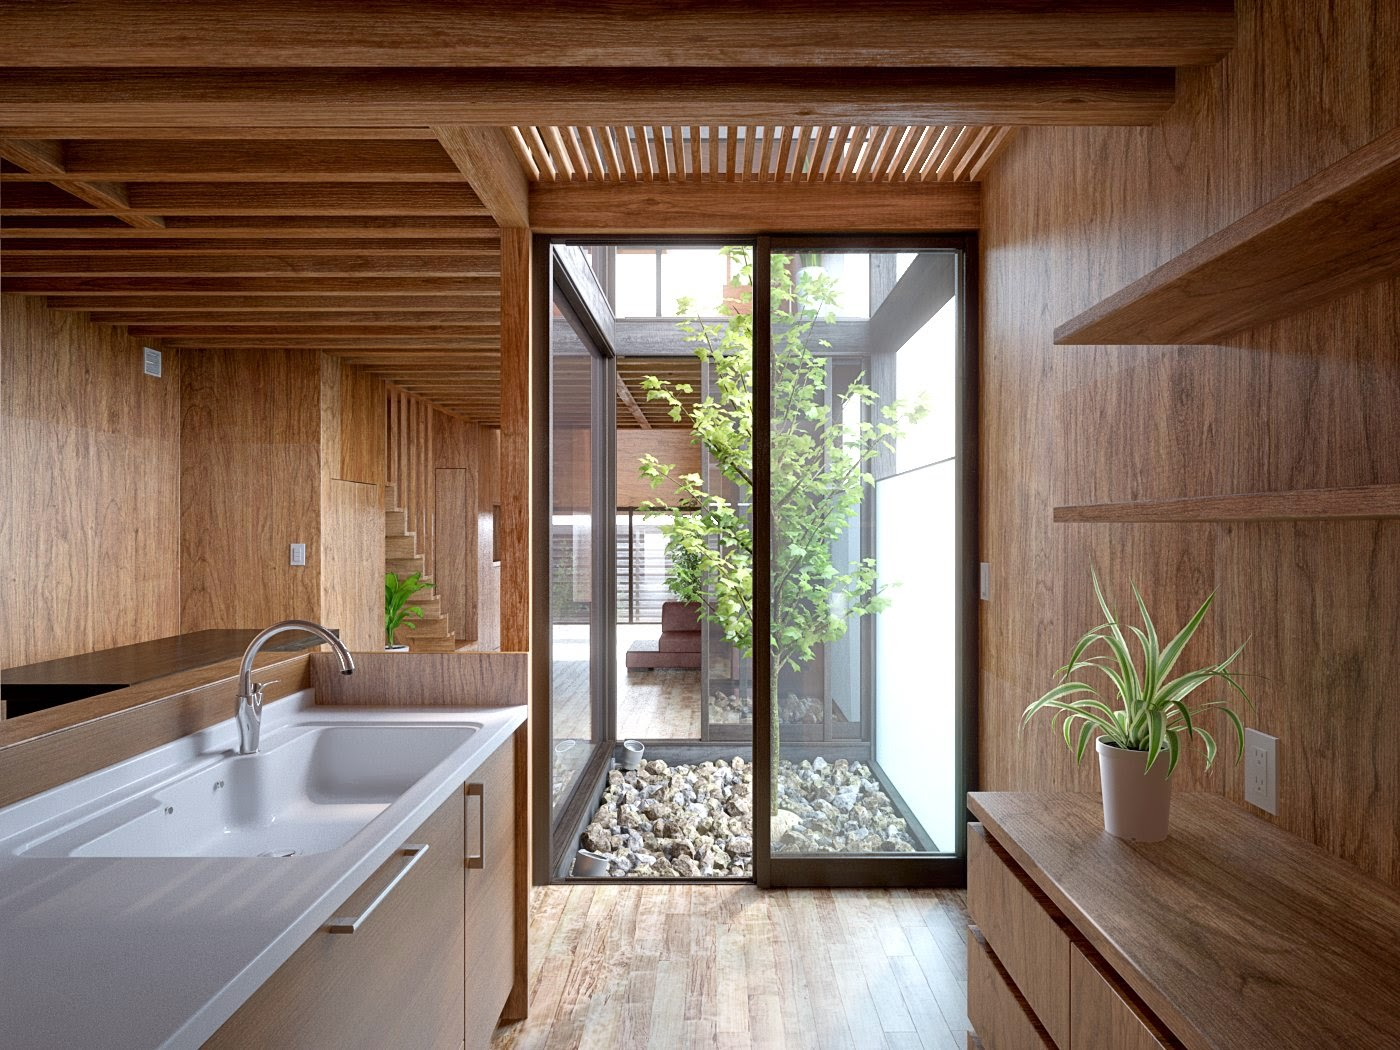 Making of wooden interior scene 4 from archinteriors 28 for Vray interior